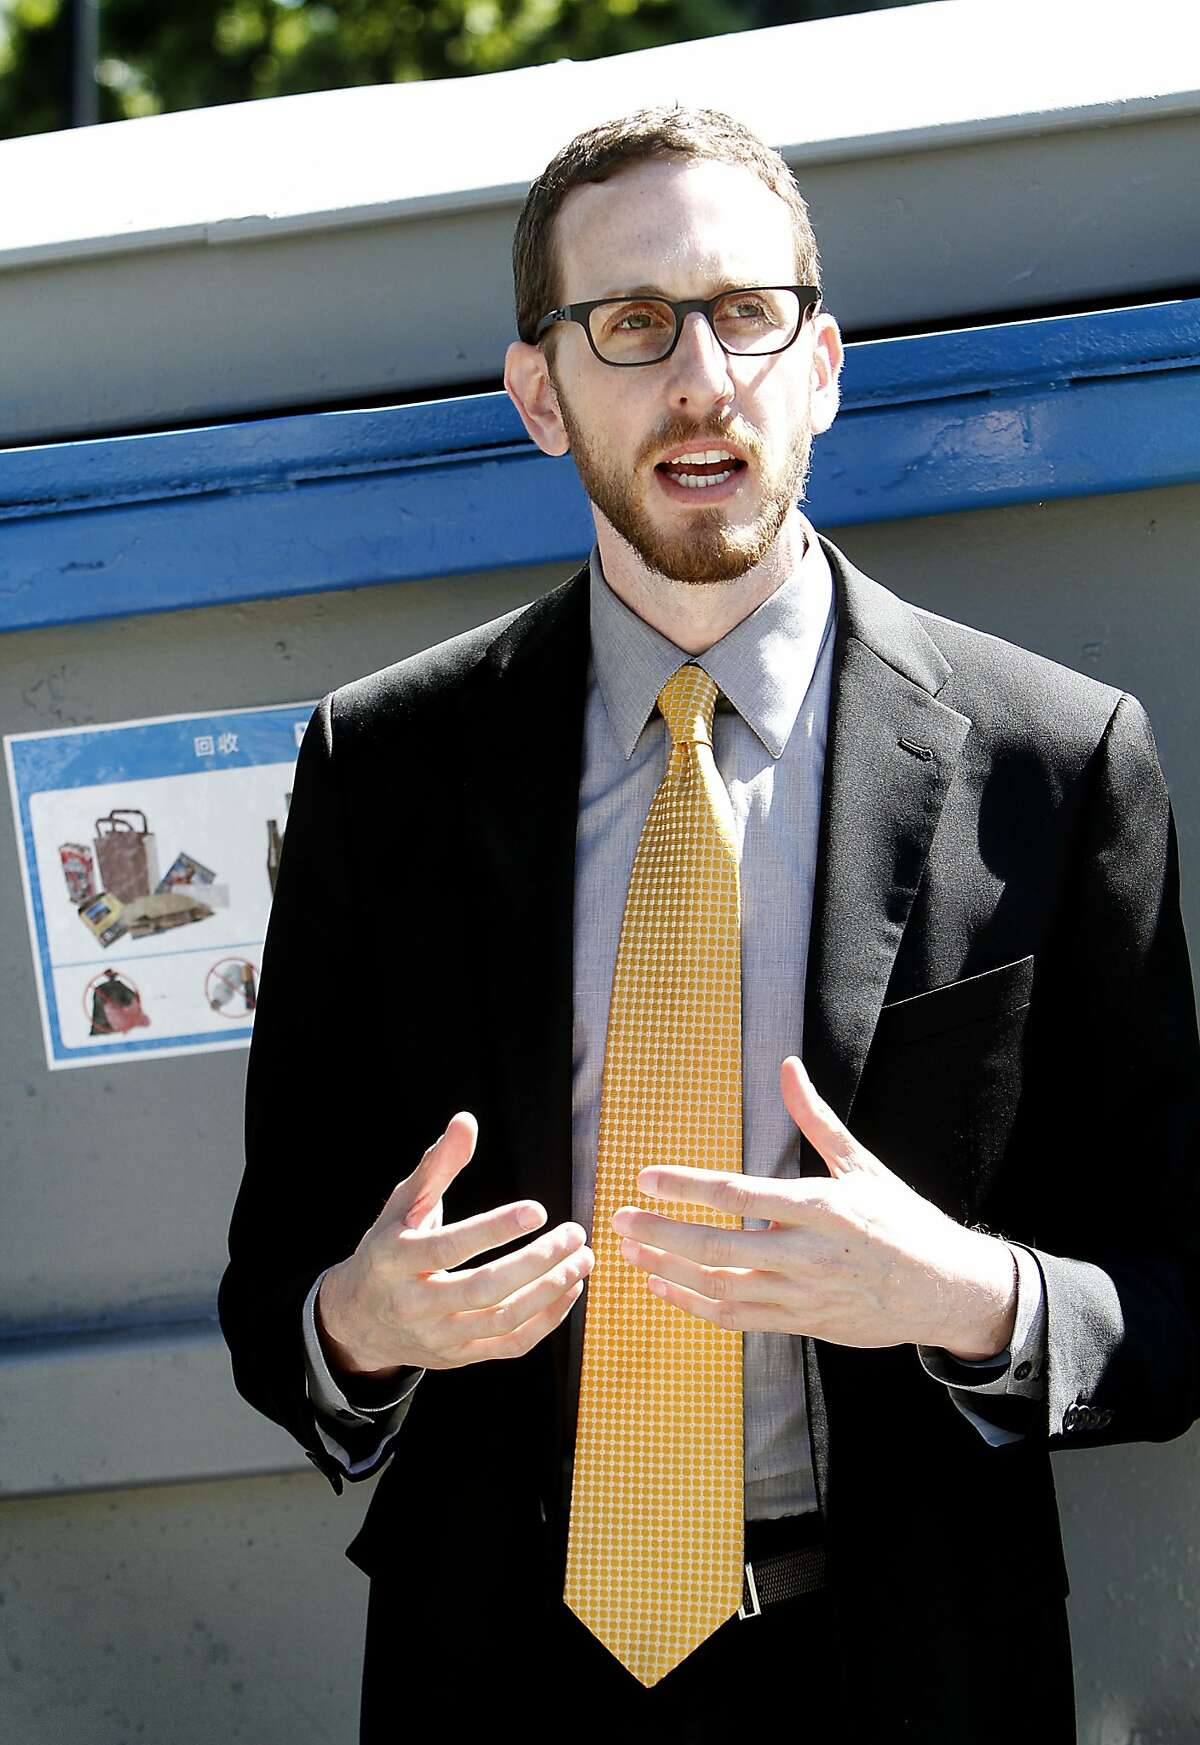 Supervisor Scott Wiener talks to the press at a new pop-up recycling and composting location meant to curb the trash problem at Dolores Park in San Francisco, Calif., on Wednesday, April 15, 2015.